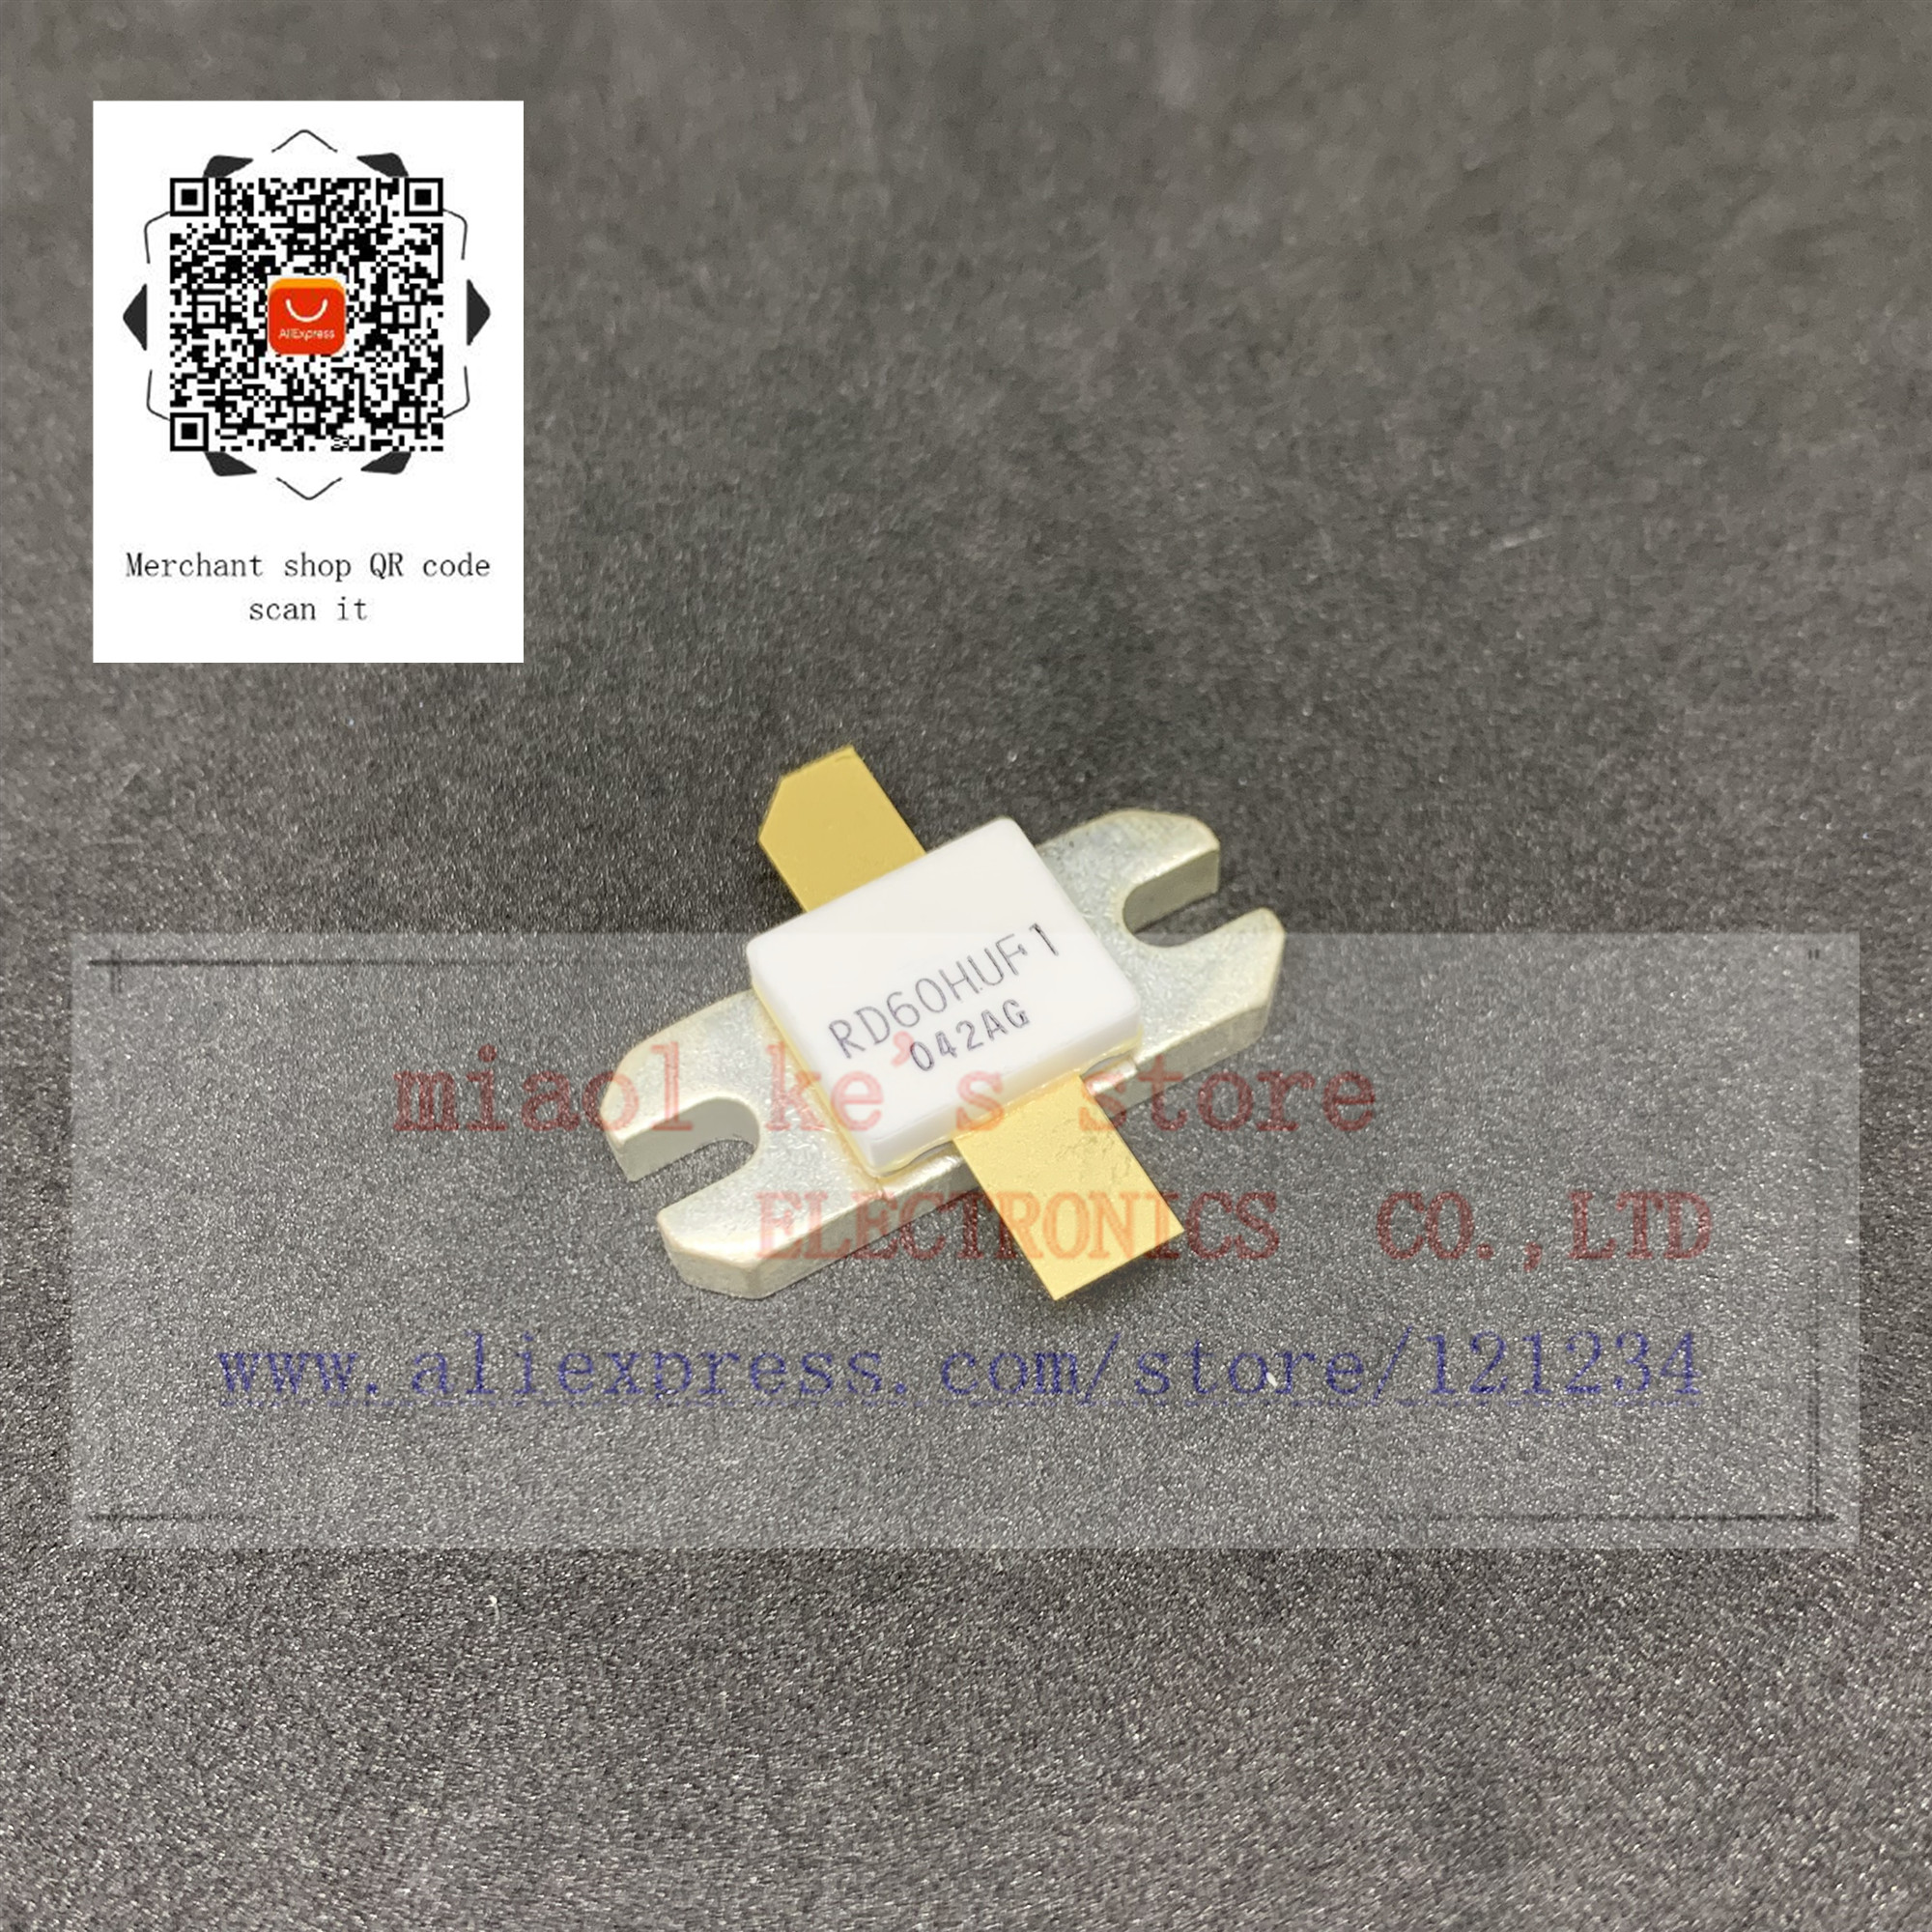 nd60huf1 - 100%New original: RD60HUF1 RD60HUF1-101 - Silicon MOSFET Power Transistor 520MHz 60W